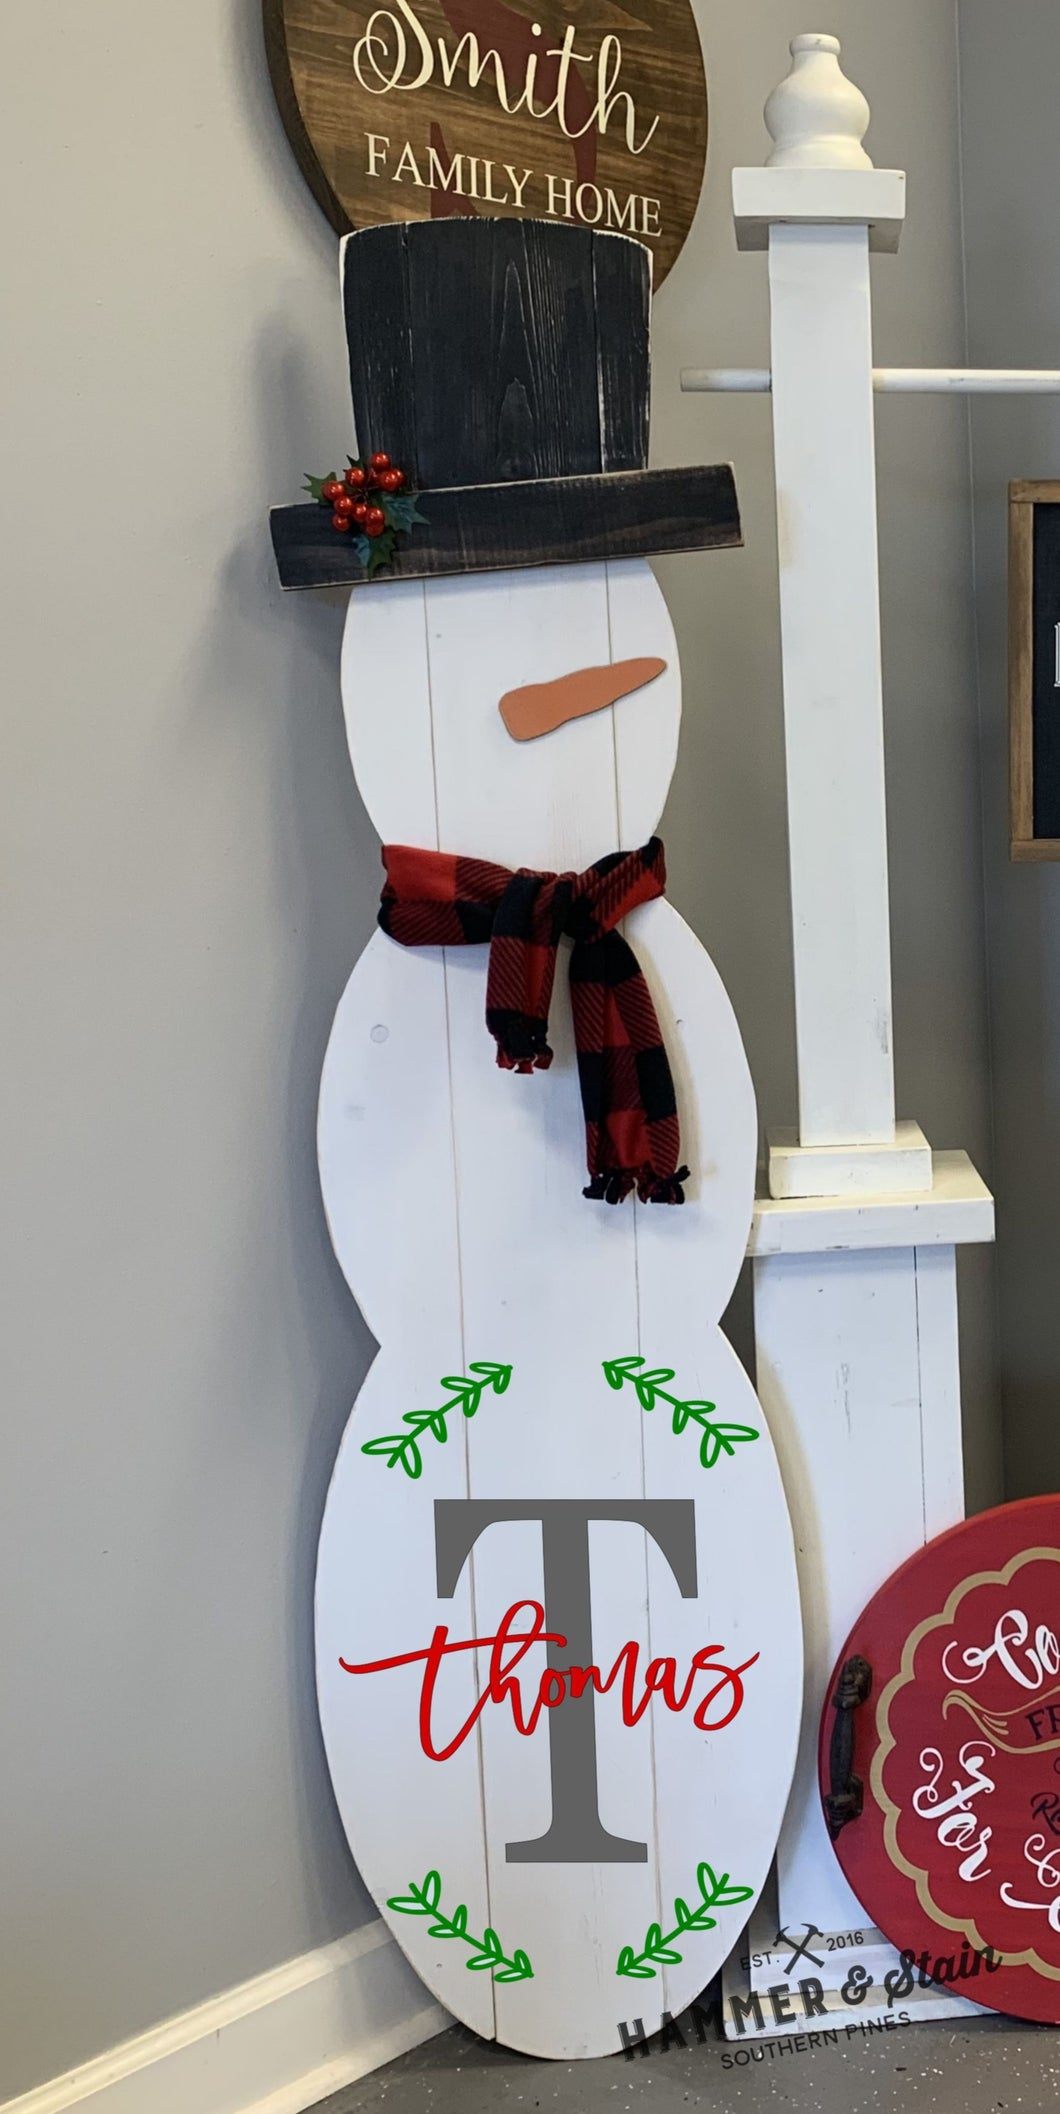 10/21/2020 (6:30PM) 5' Personalized Porch Snowman Workshop (Southern Pines)